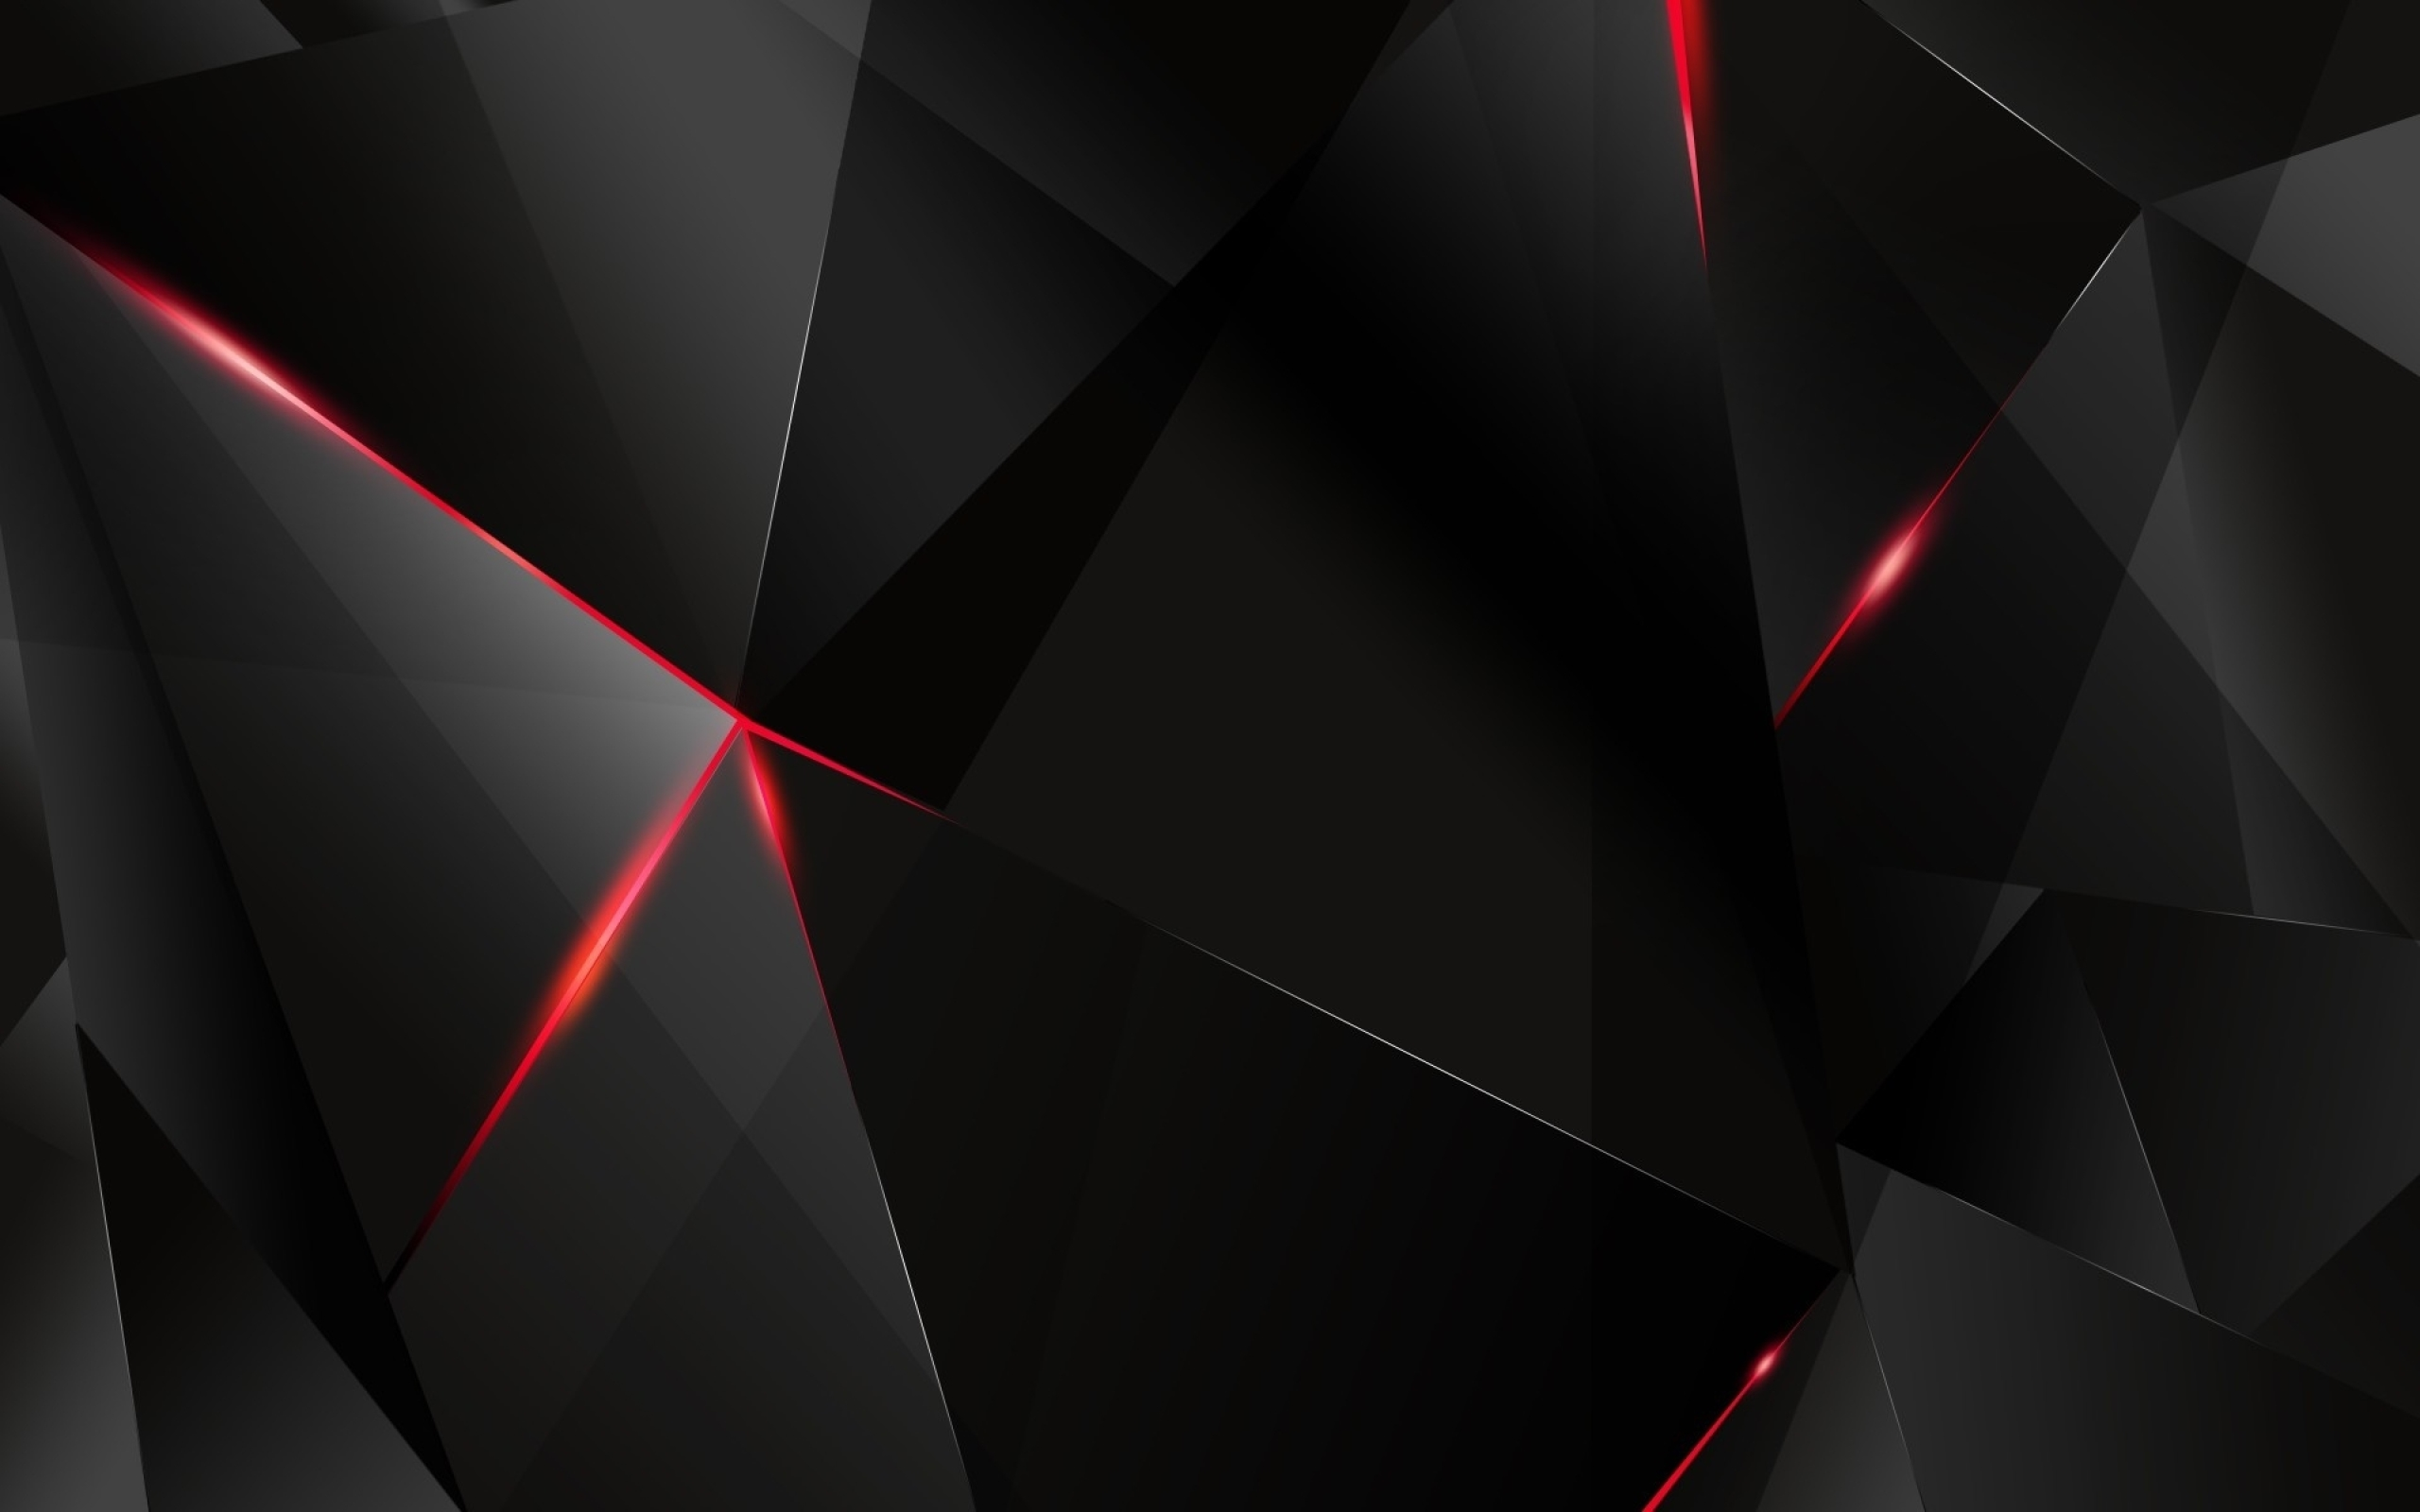 Black And Red Wallpapers High Quality Download Free